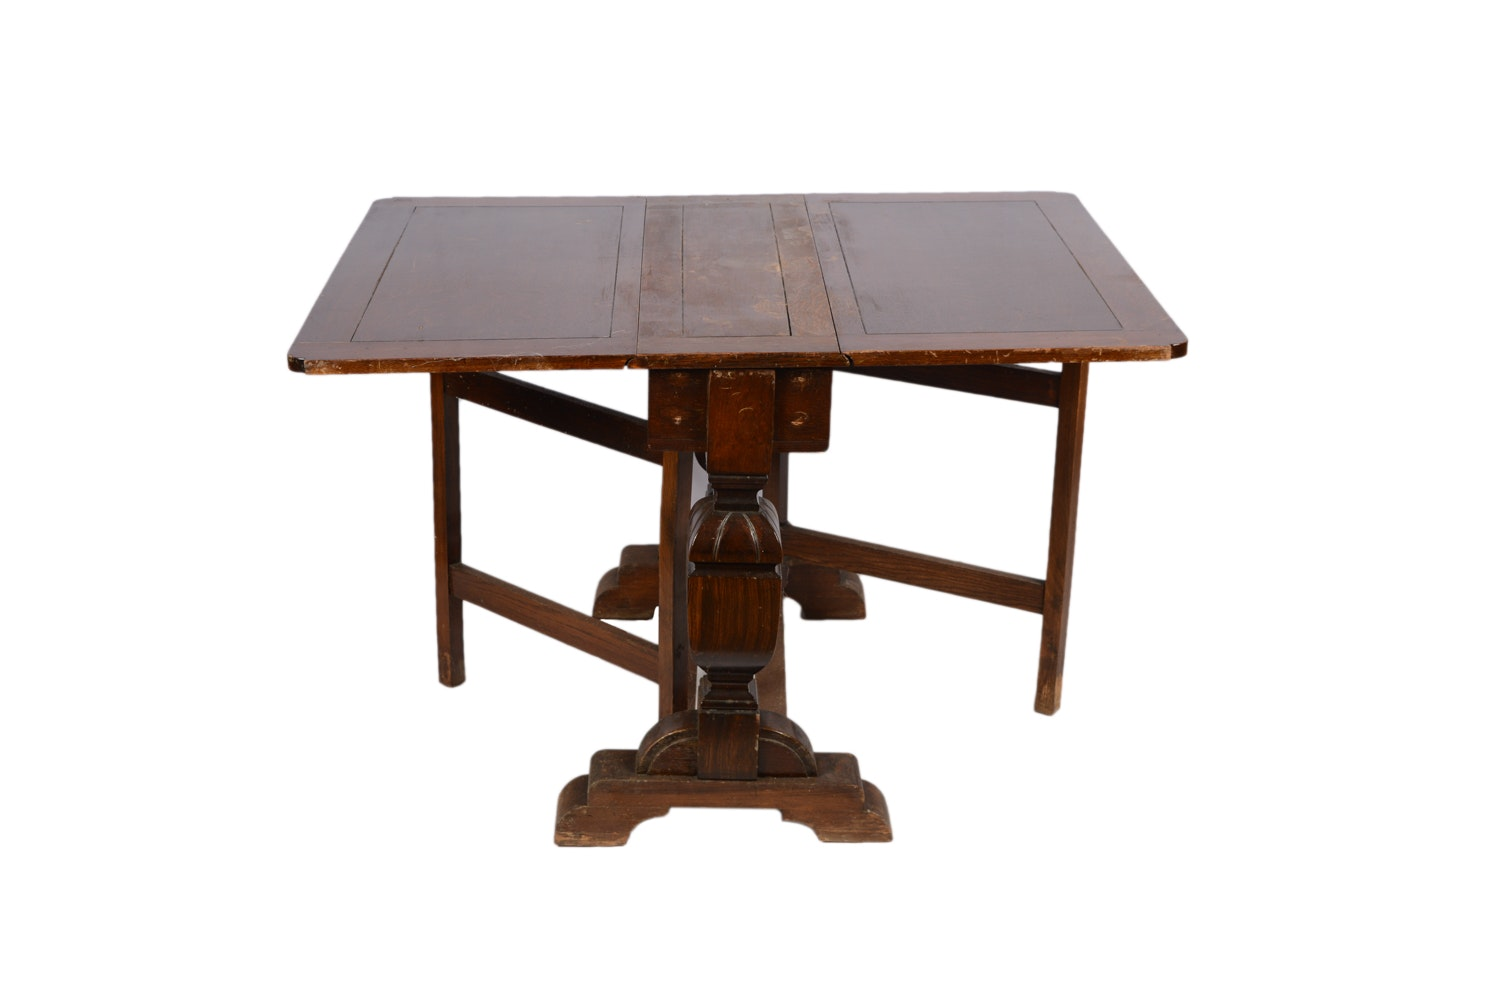 Stained Oak Gate Leg Table, 20th Century